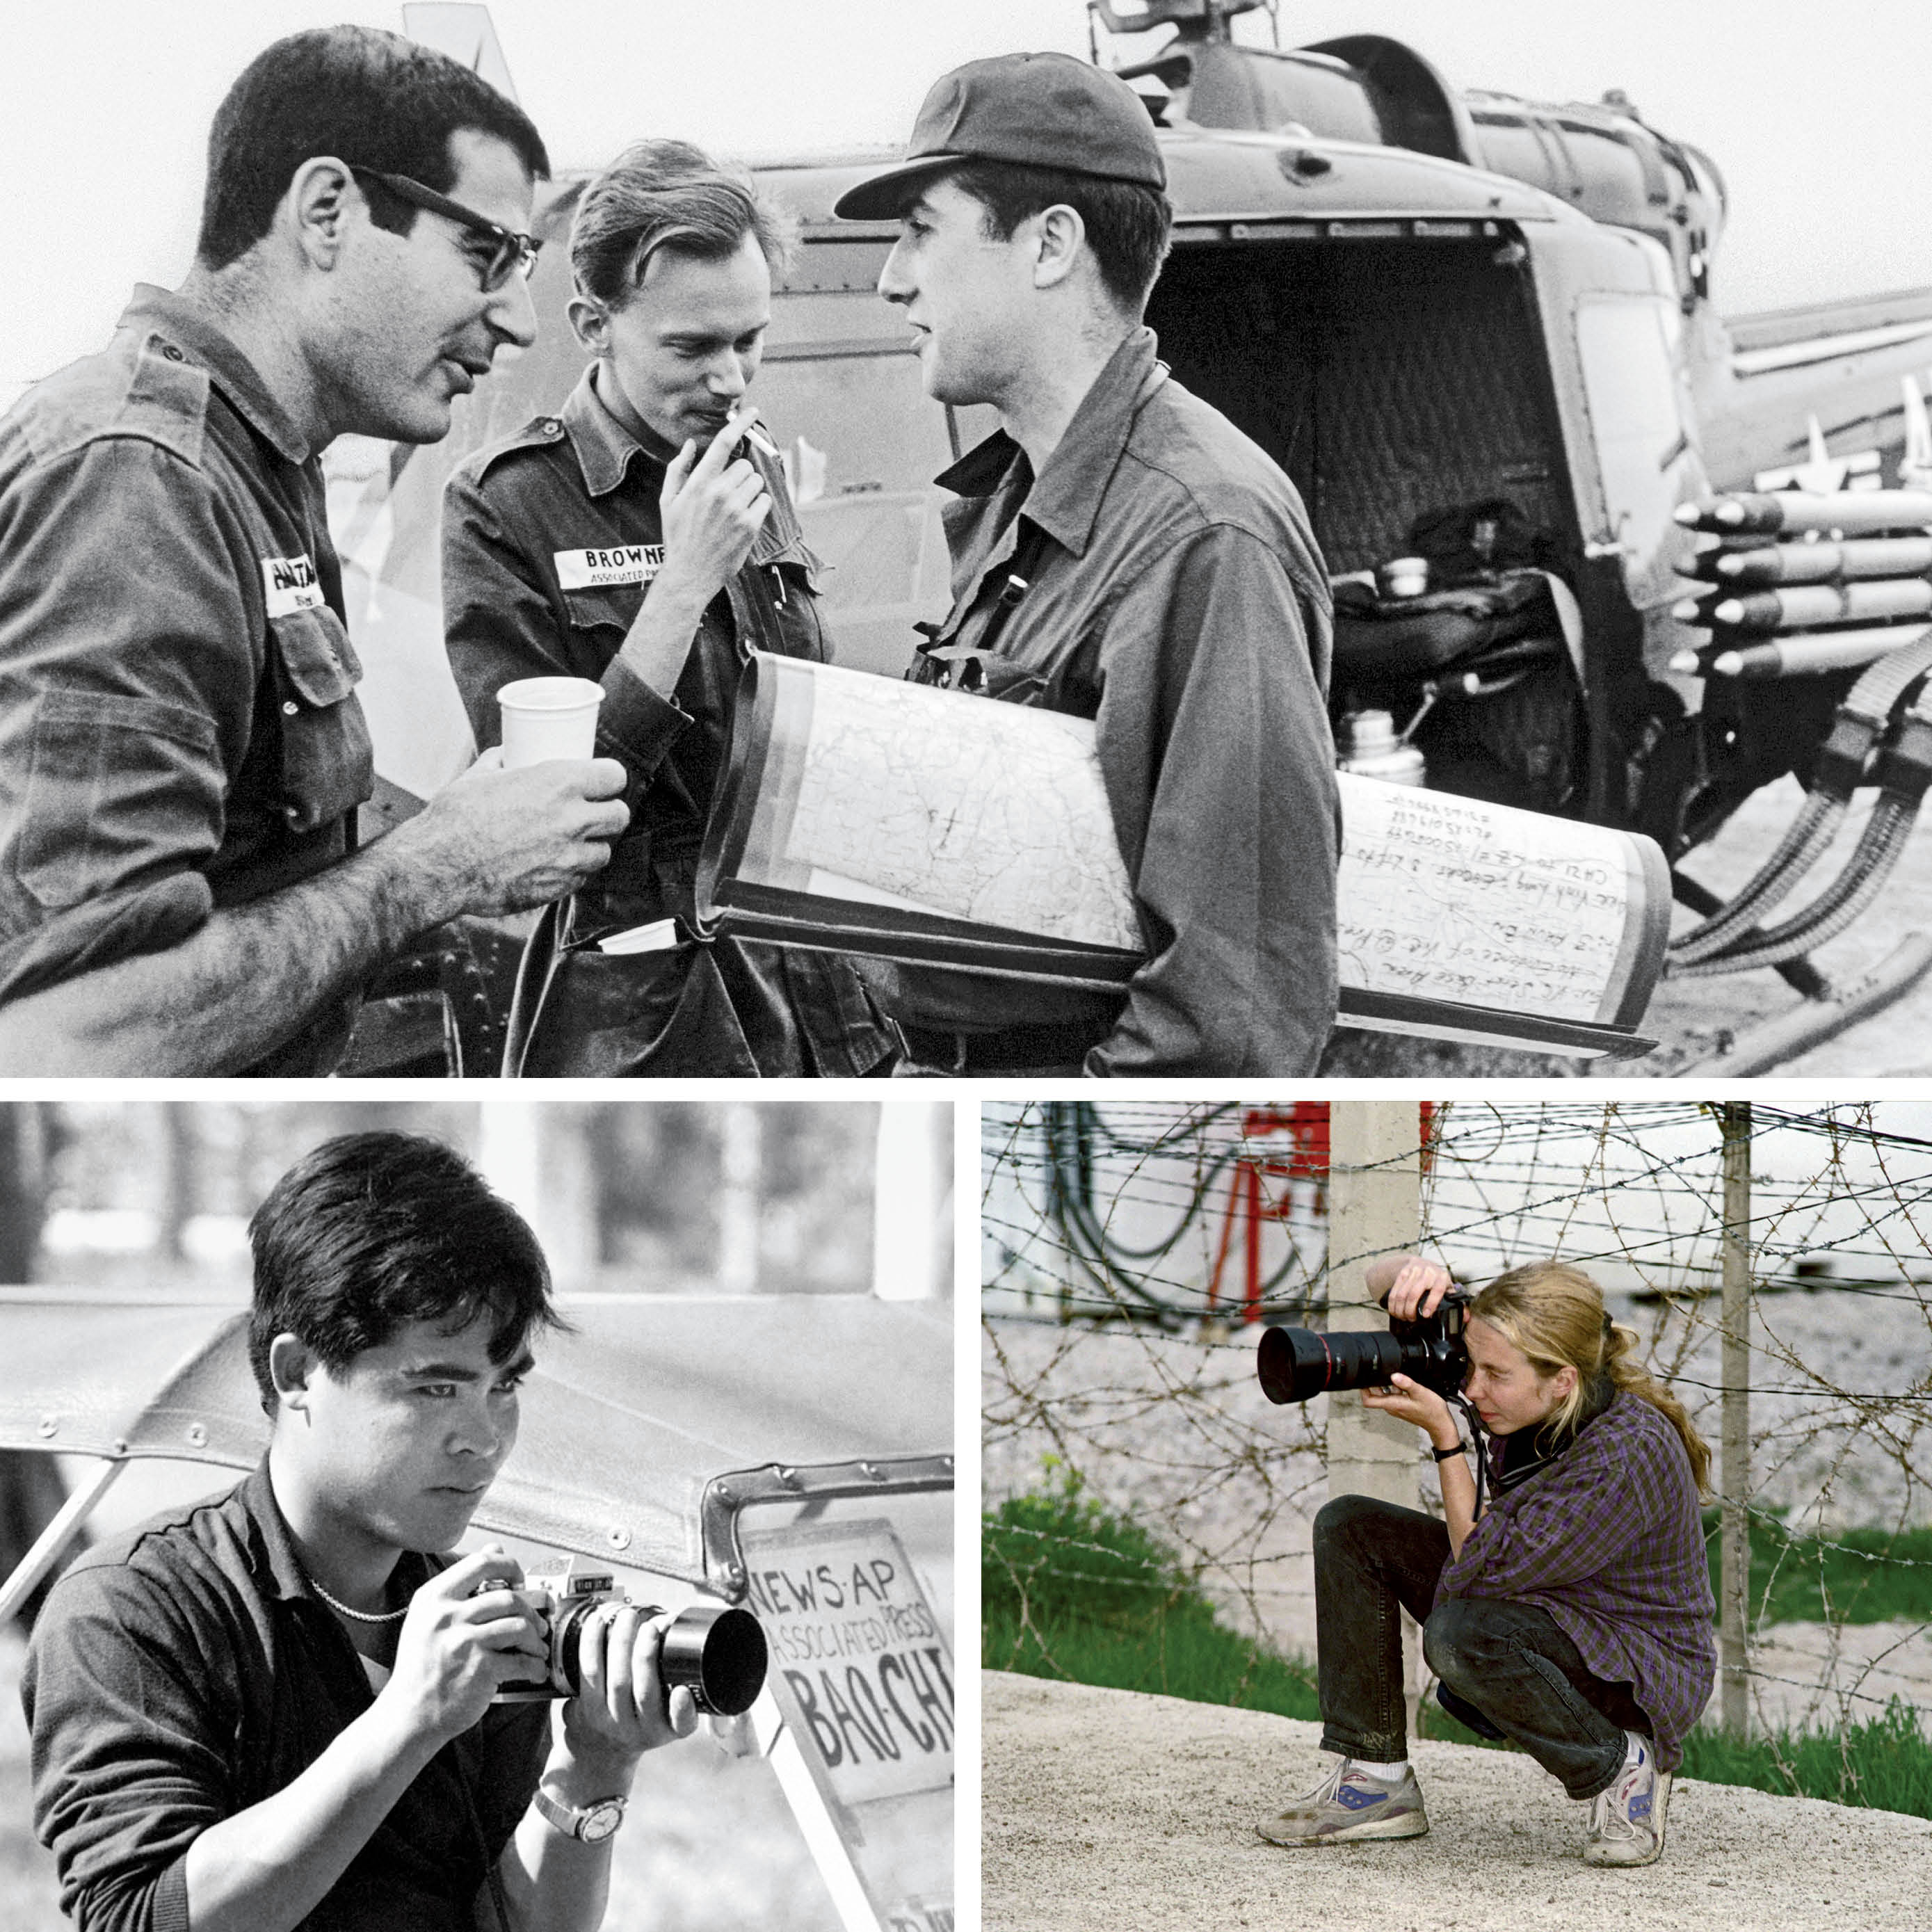 Top: <em>The New York Times</em>' David Halberstam (left), AP's Malcolm Browne (center), and Neil Sheehan of UPI in Vietnam's Mekong Delta in 1964. Bottom left: AP's Nick Ut in Saigon in an undated image. Bottom right: A photographer in Bosnia in 1993.